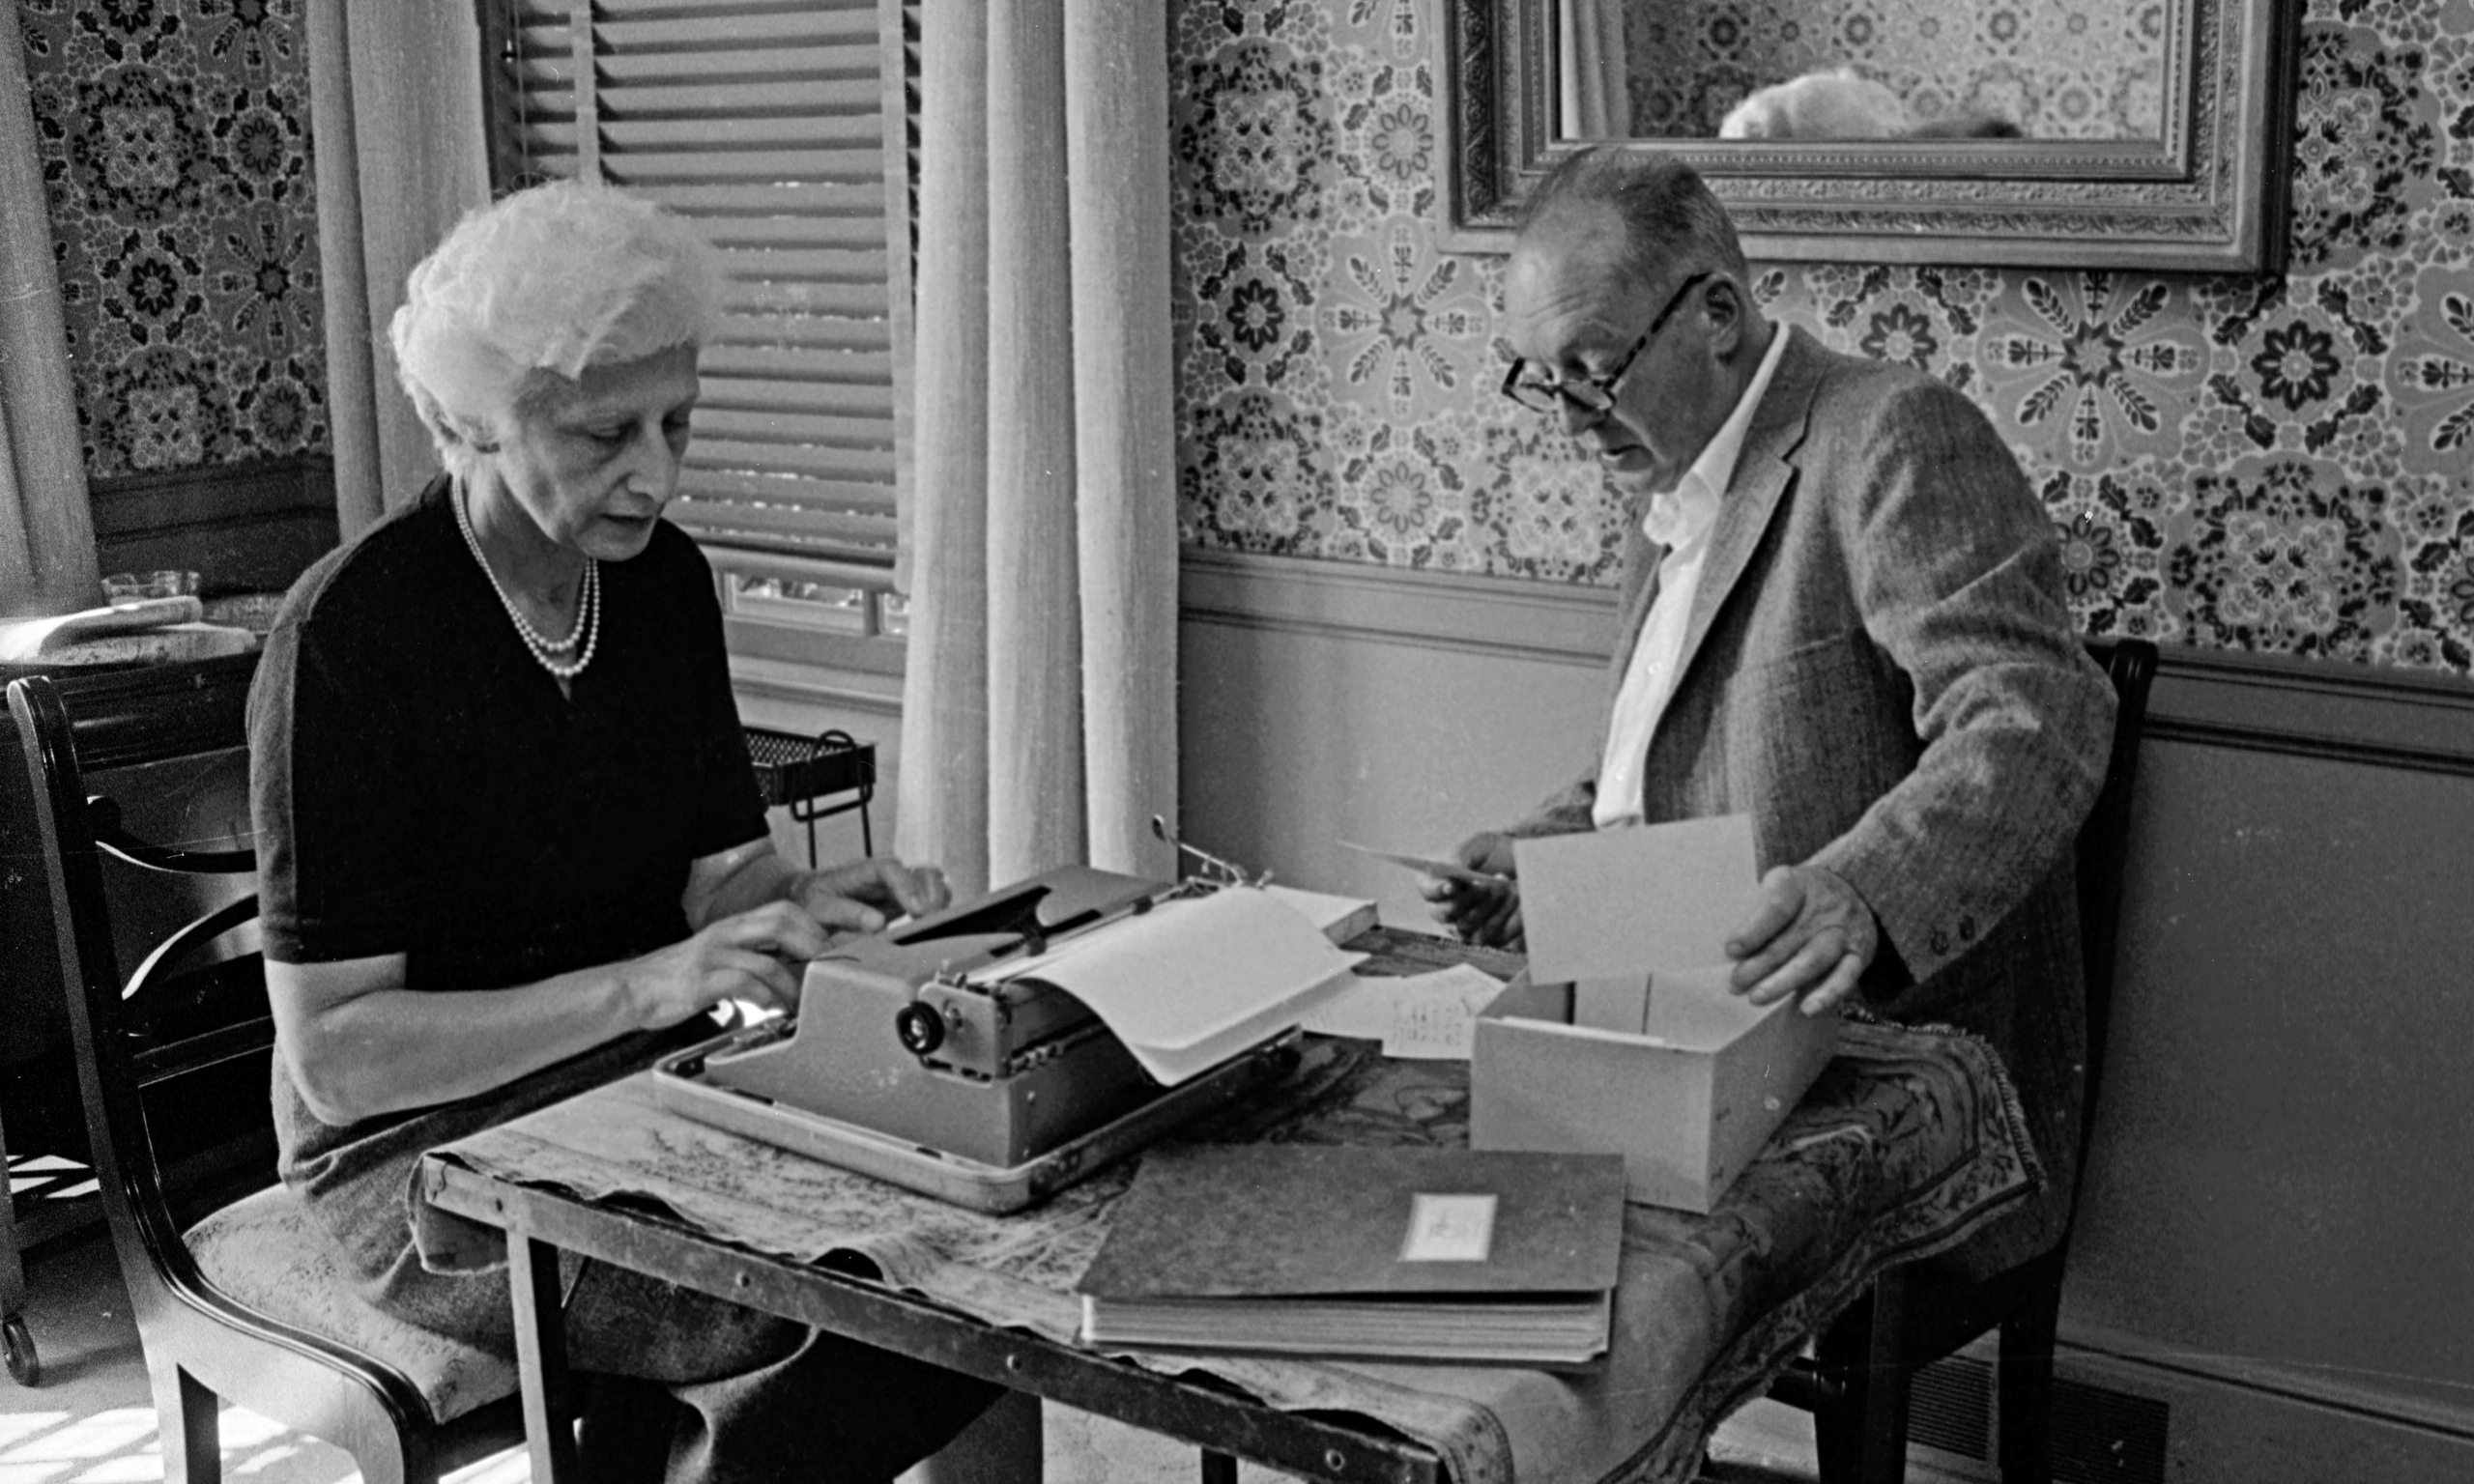 Vladimir Nabokov dictates while his wife Vera types, Ithaca New York, 1958